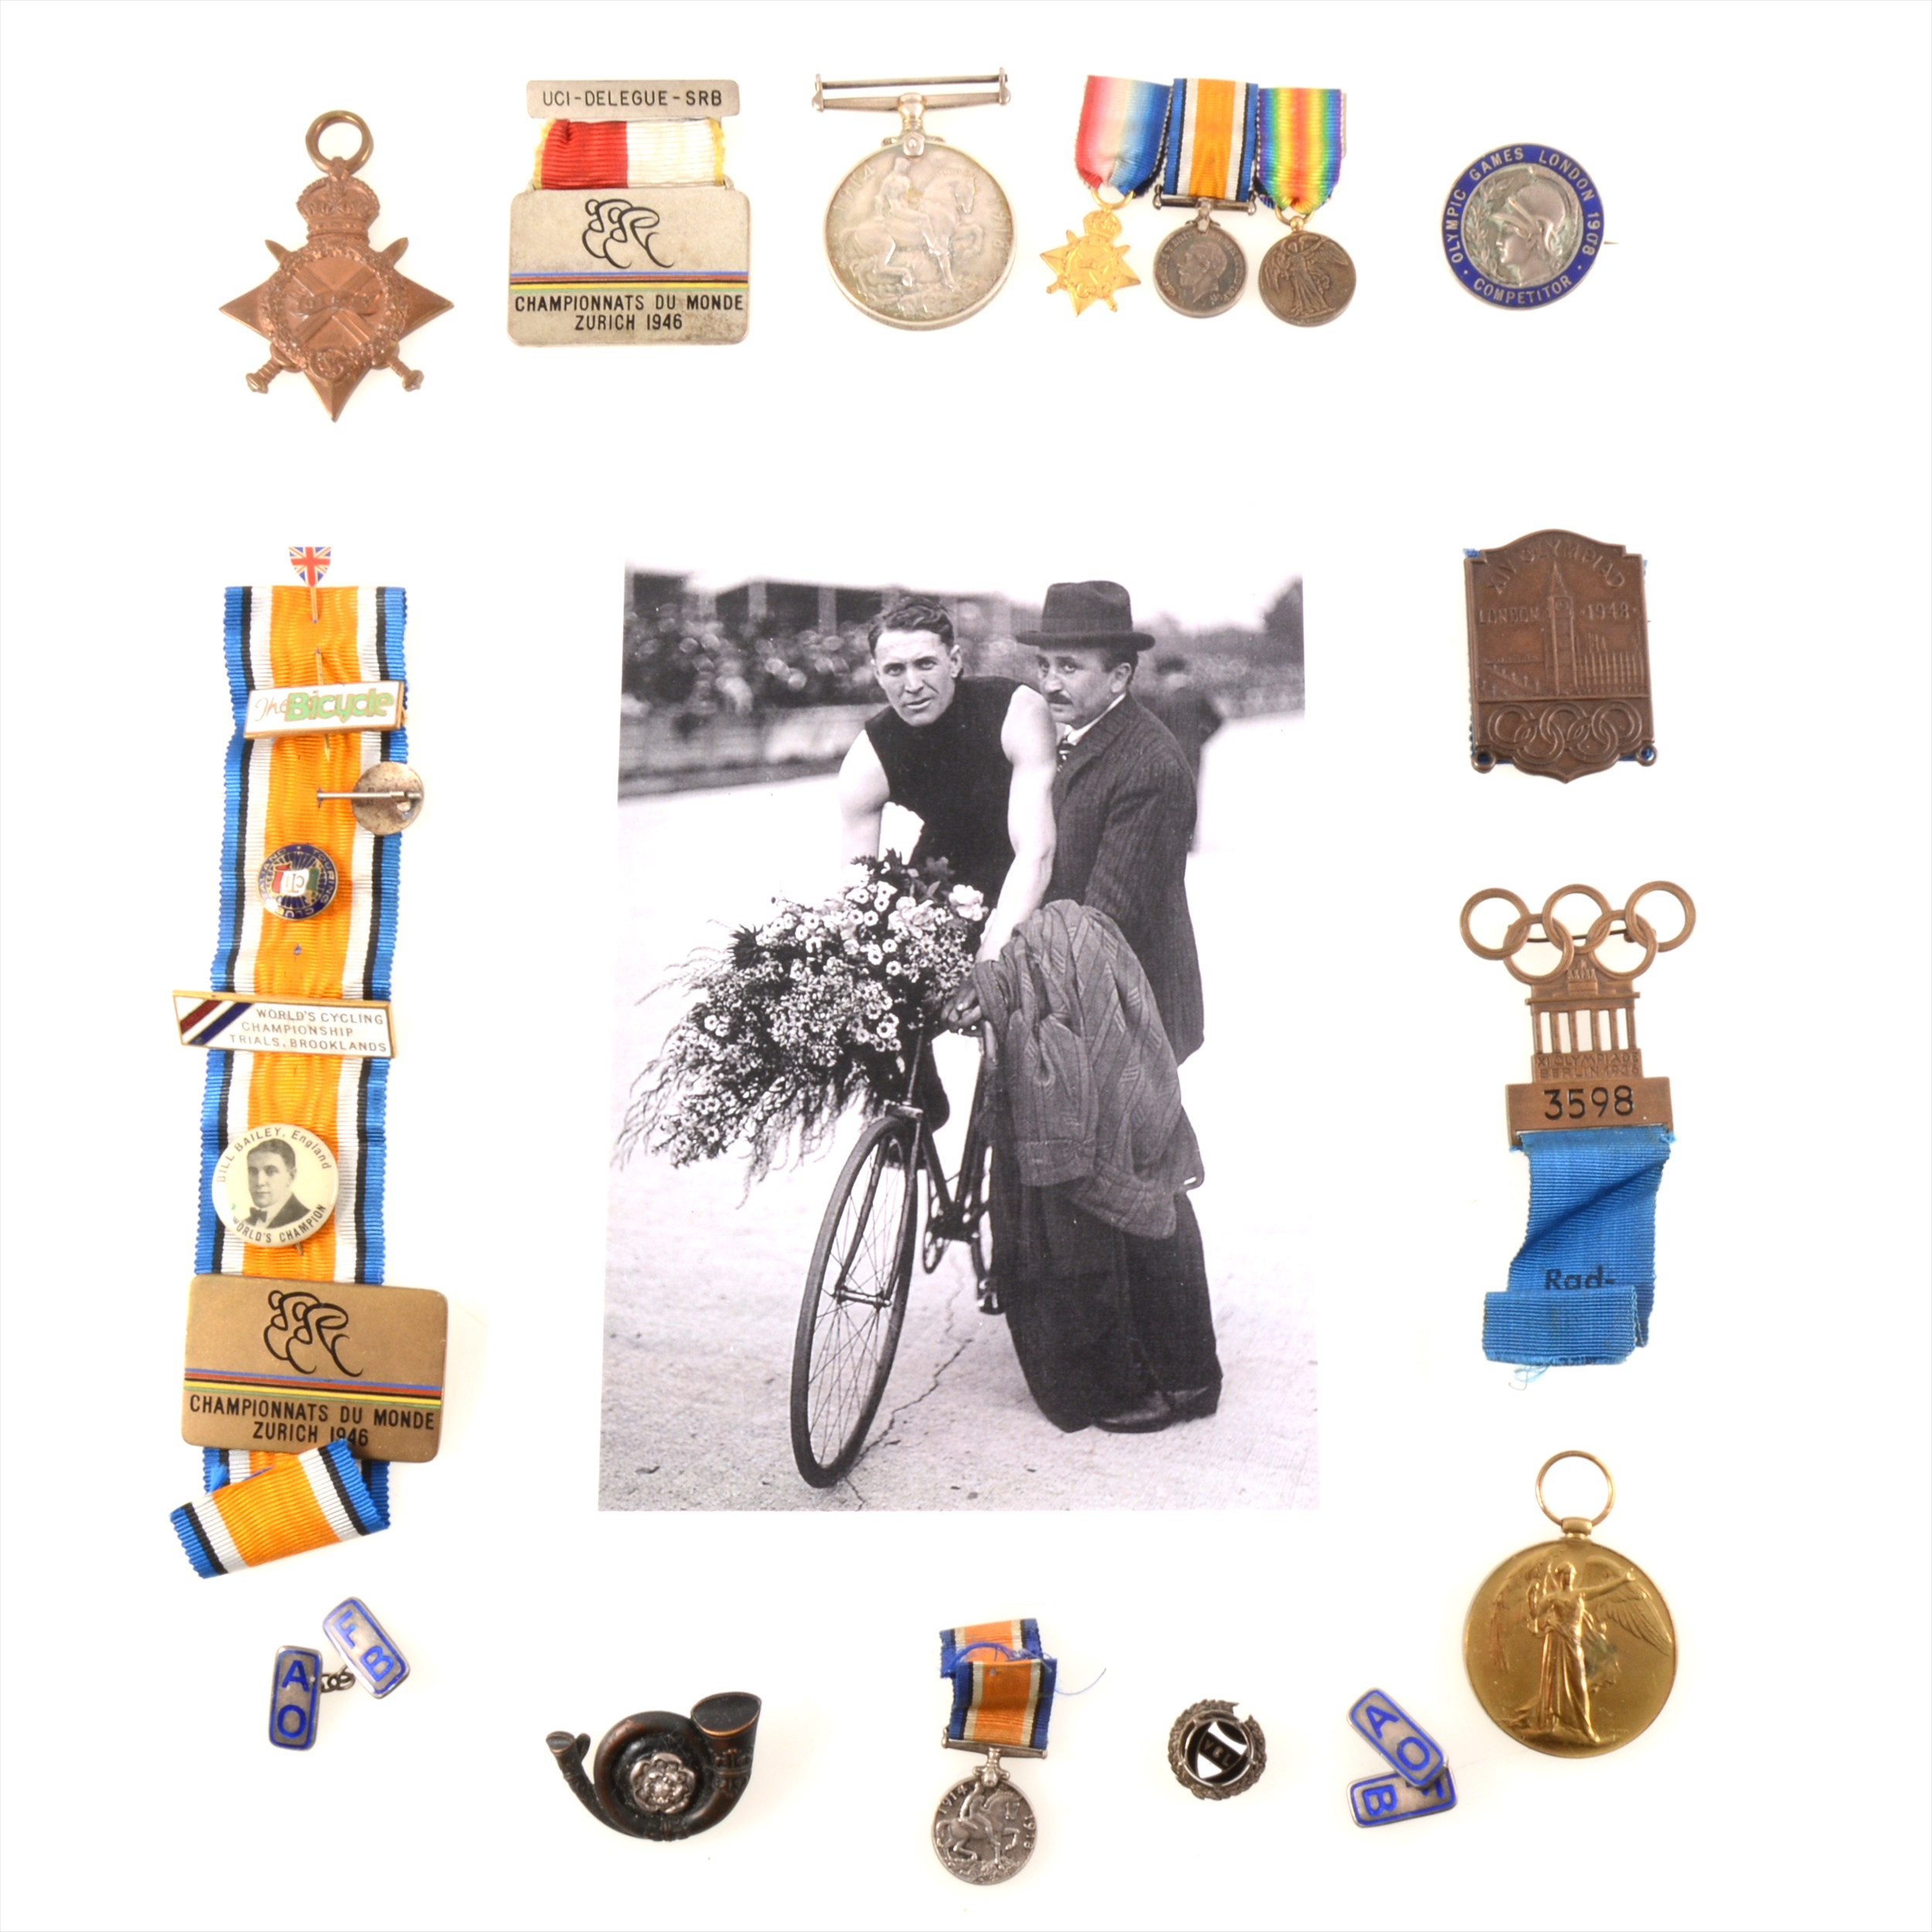 """Lot 179 - The London 1908 Olympic Games Competitor badge of William """"Bill"""" Bailey, Sprint Cycling World"""